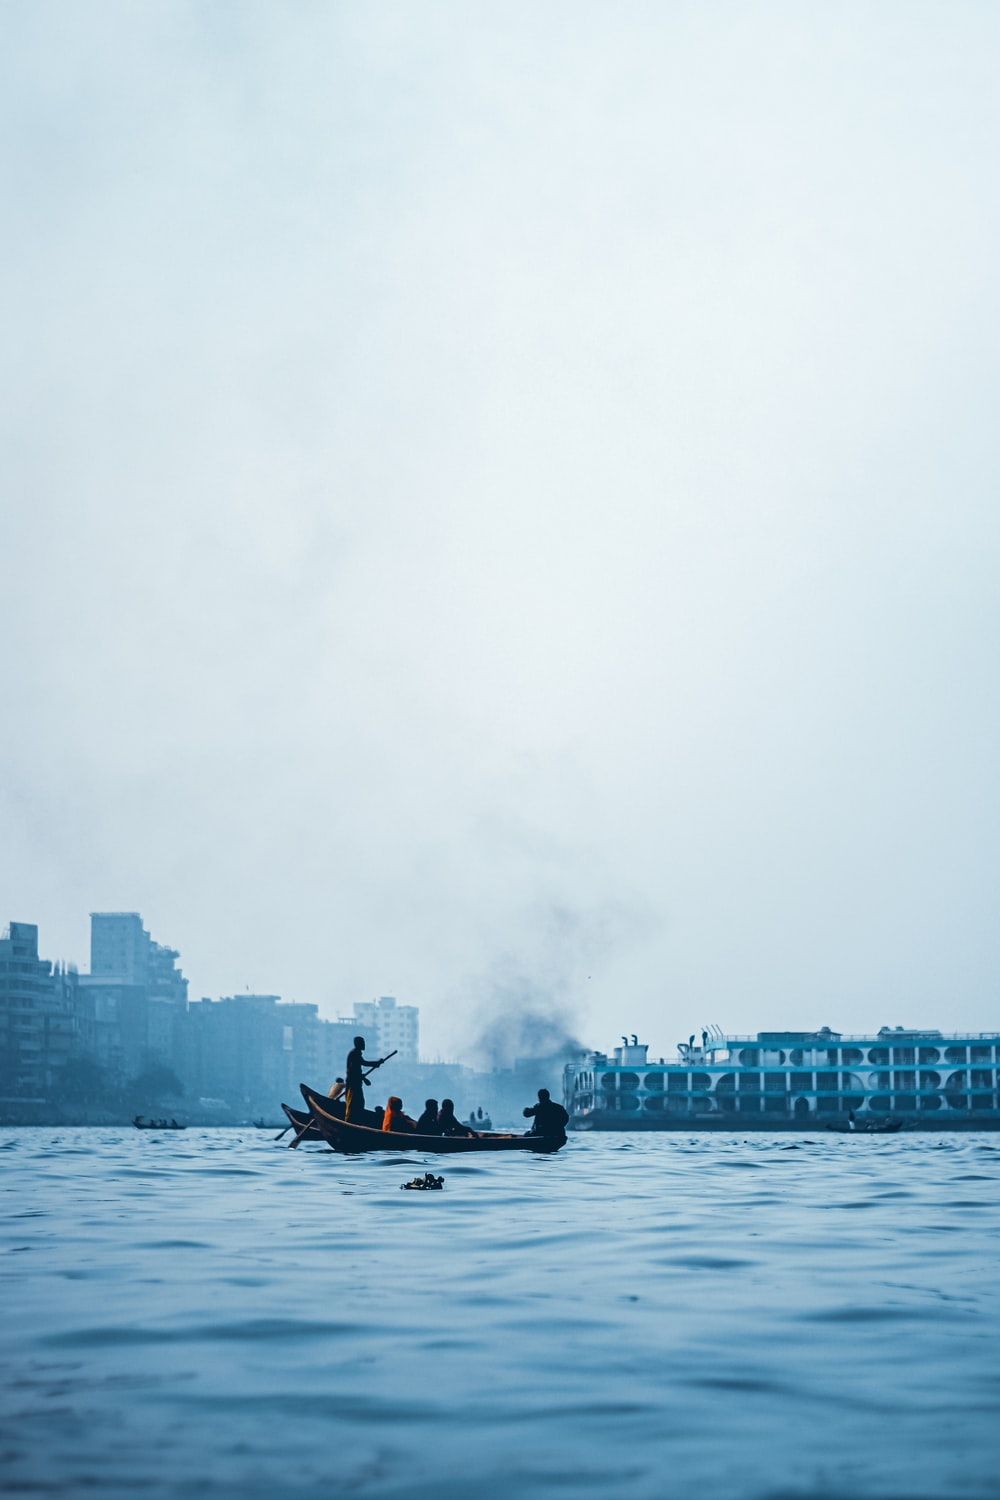 man riding on boat on water near city buildings during daytime